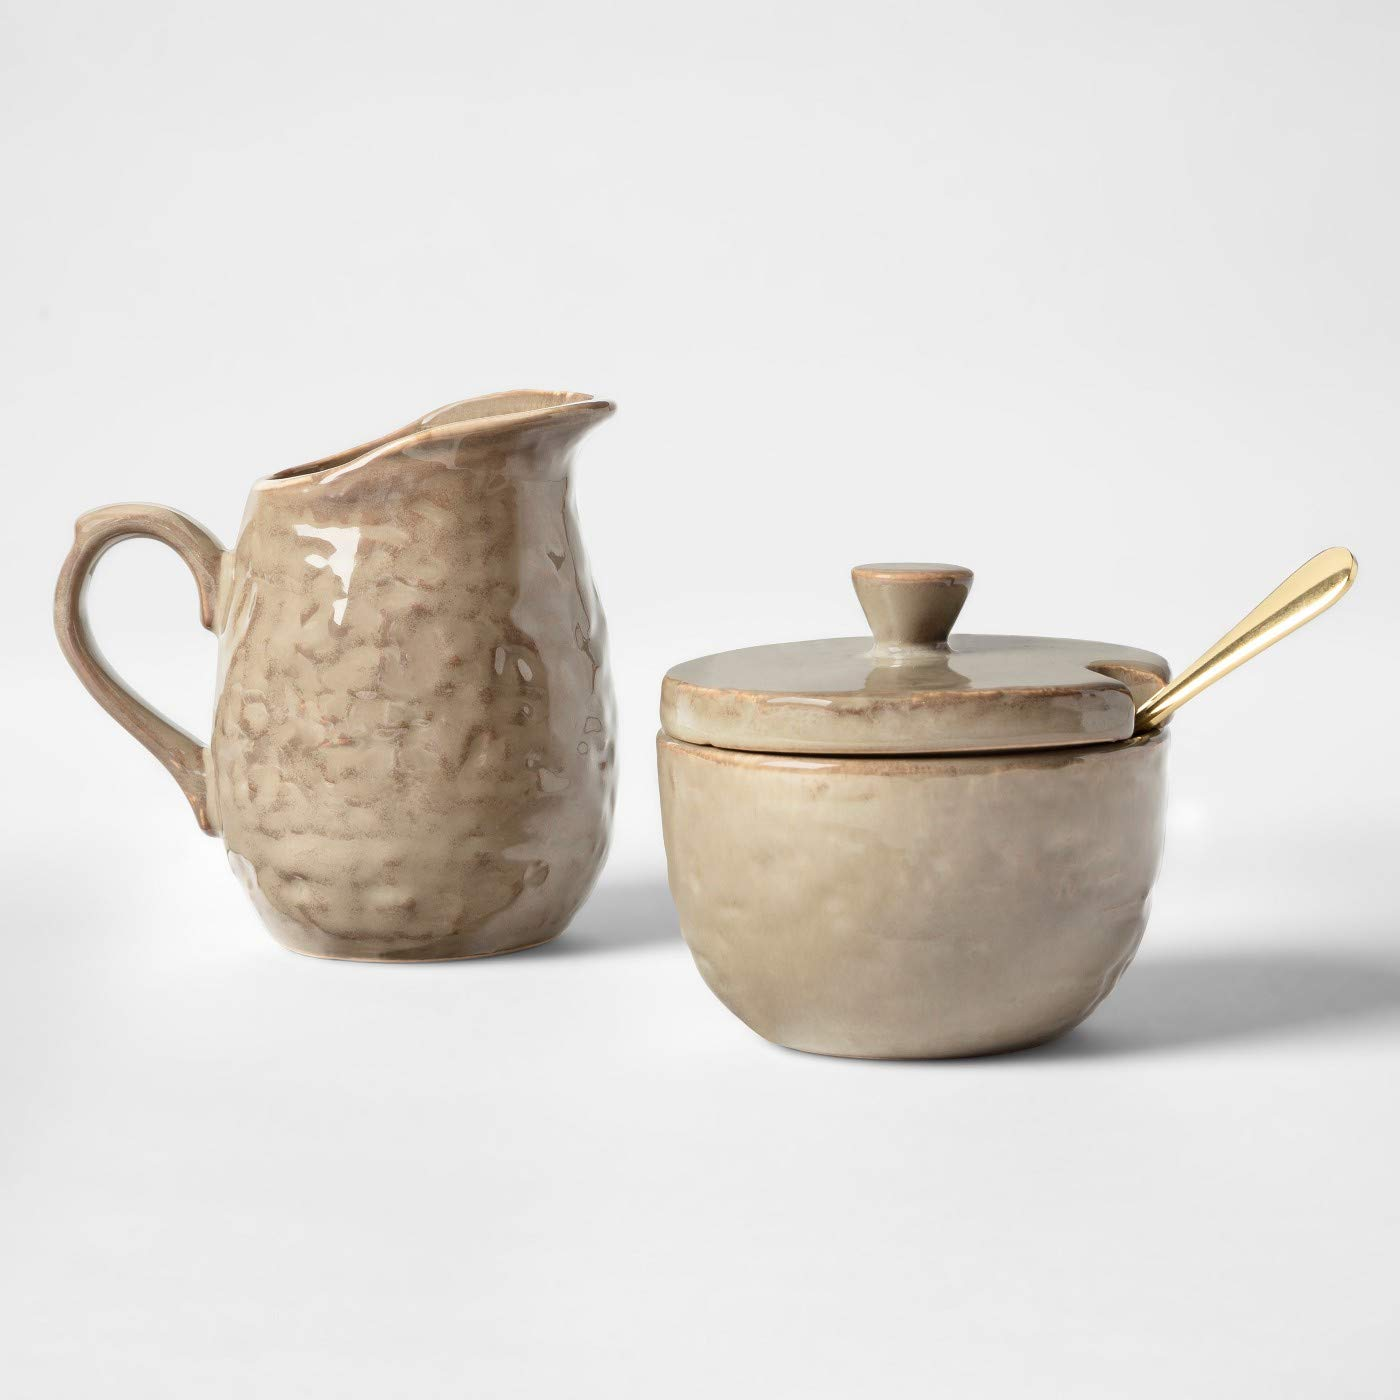 Stoneware Coffee Creamer and Sugar Bowl with Metal Spoon Bundle | Cravings by Chrissy Teigen Kitchenware